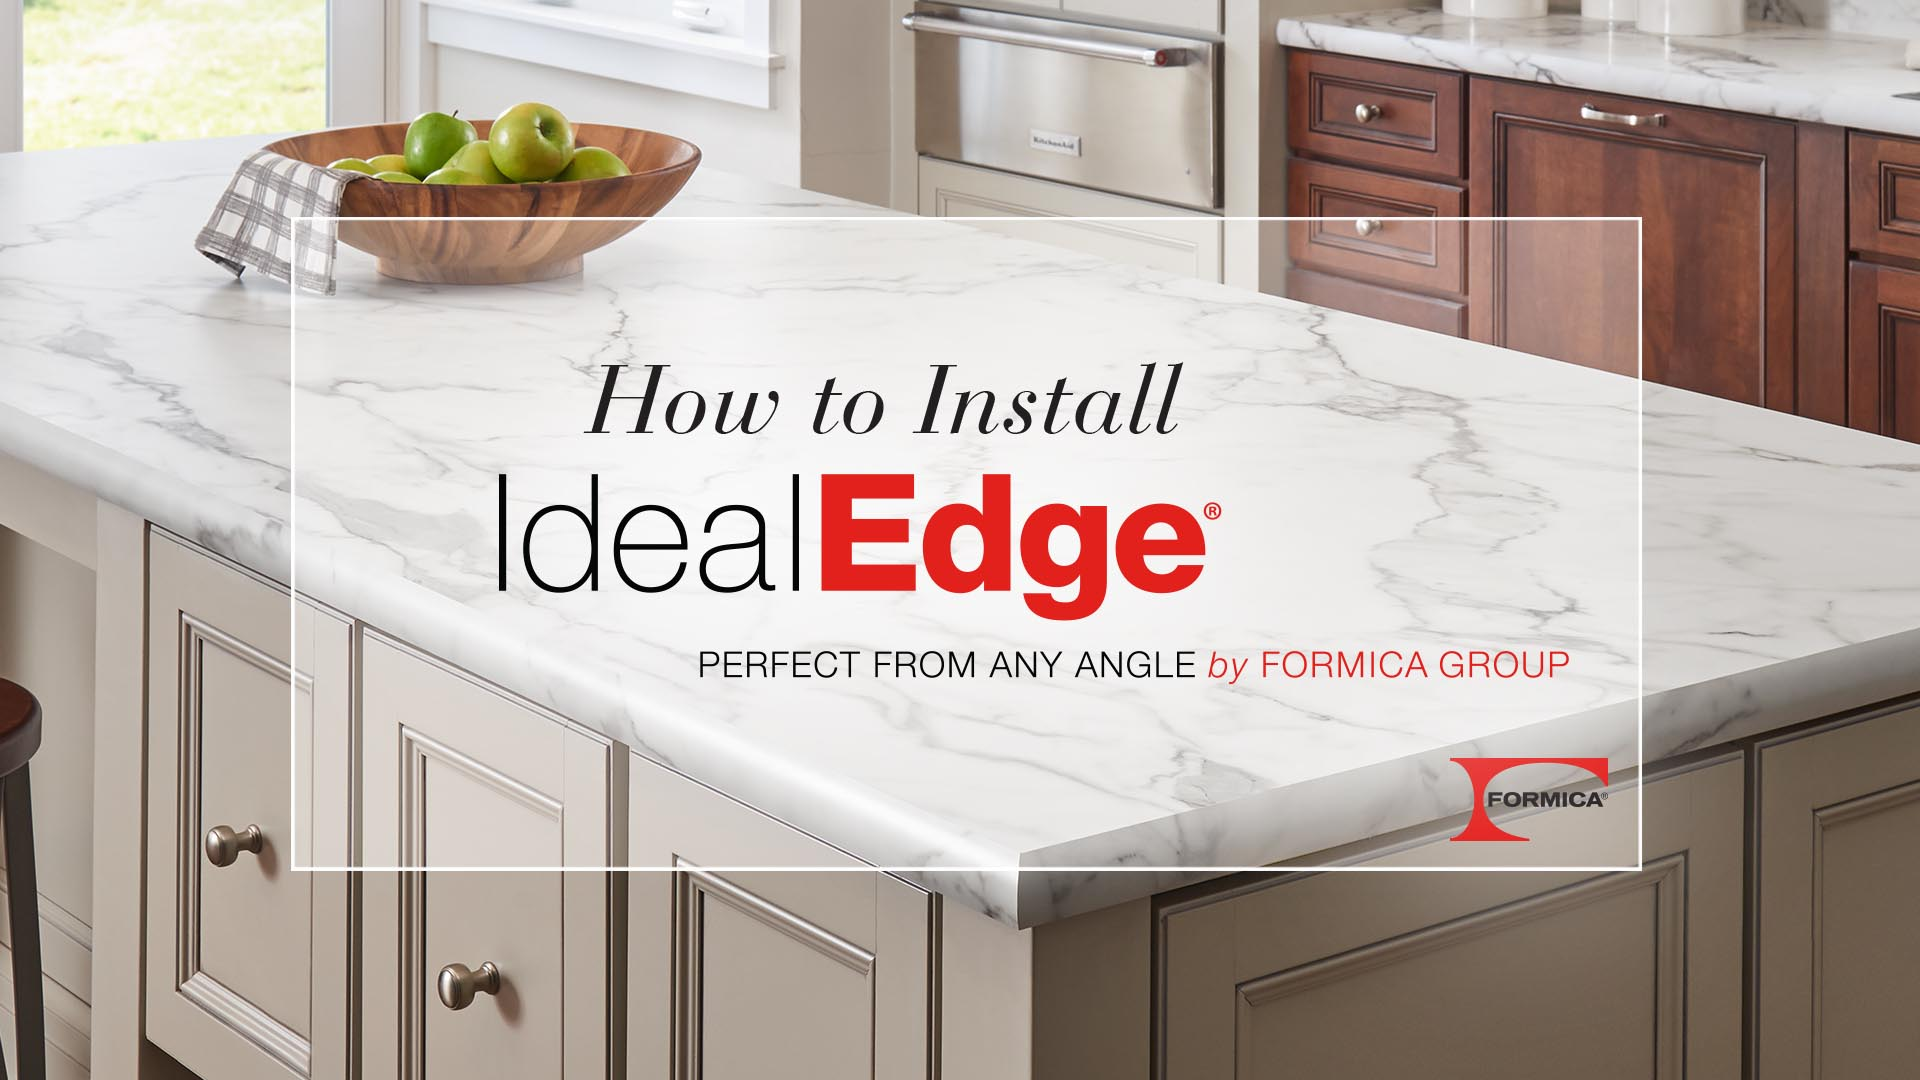 Idealedge Decorative Edging